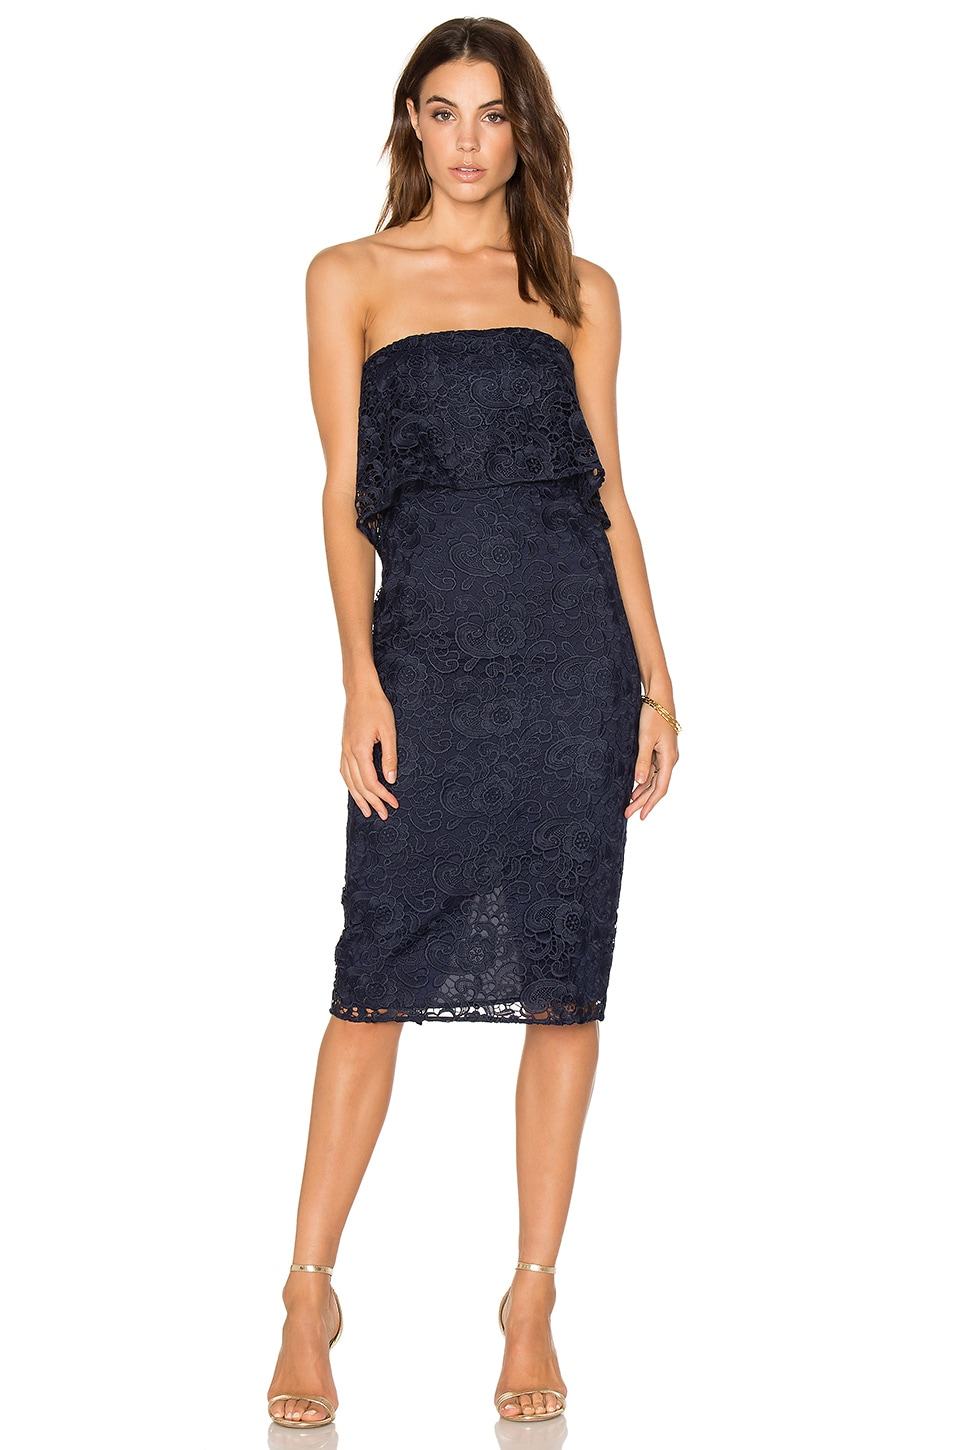 Lace Driggs Dress by Likely